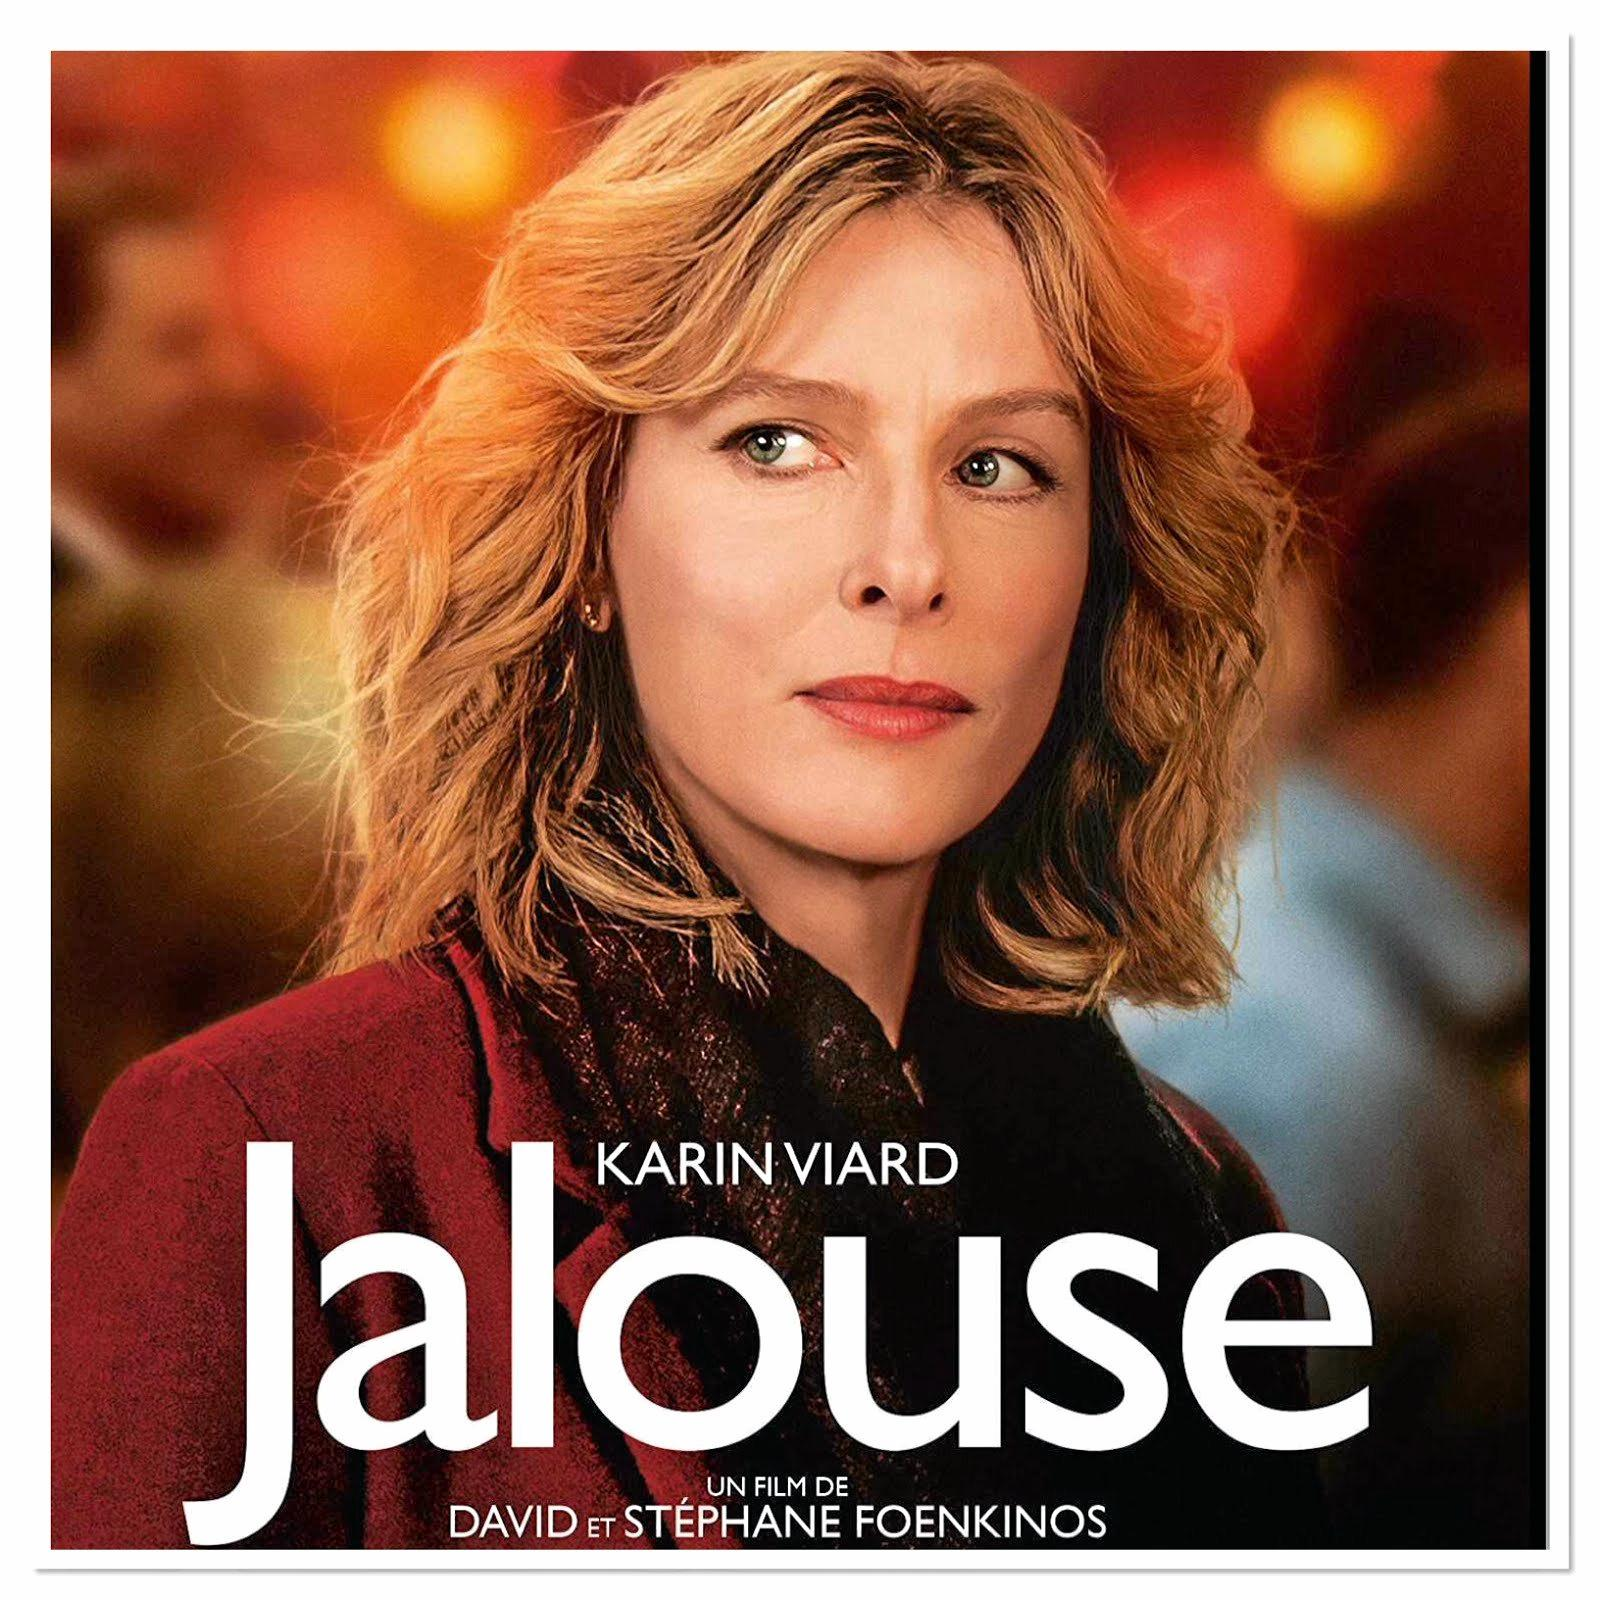 Poster for the French film Jalouse (Jealous).